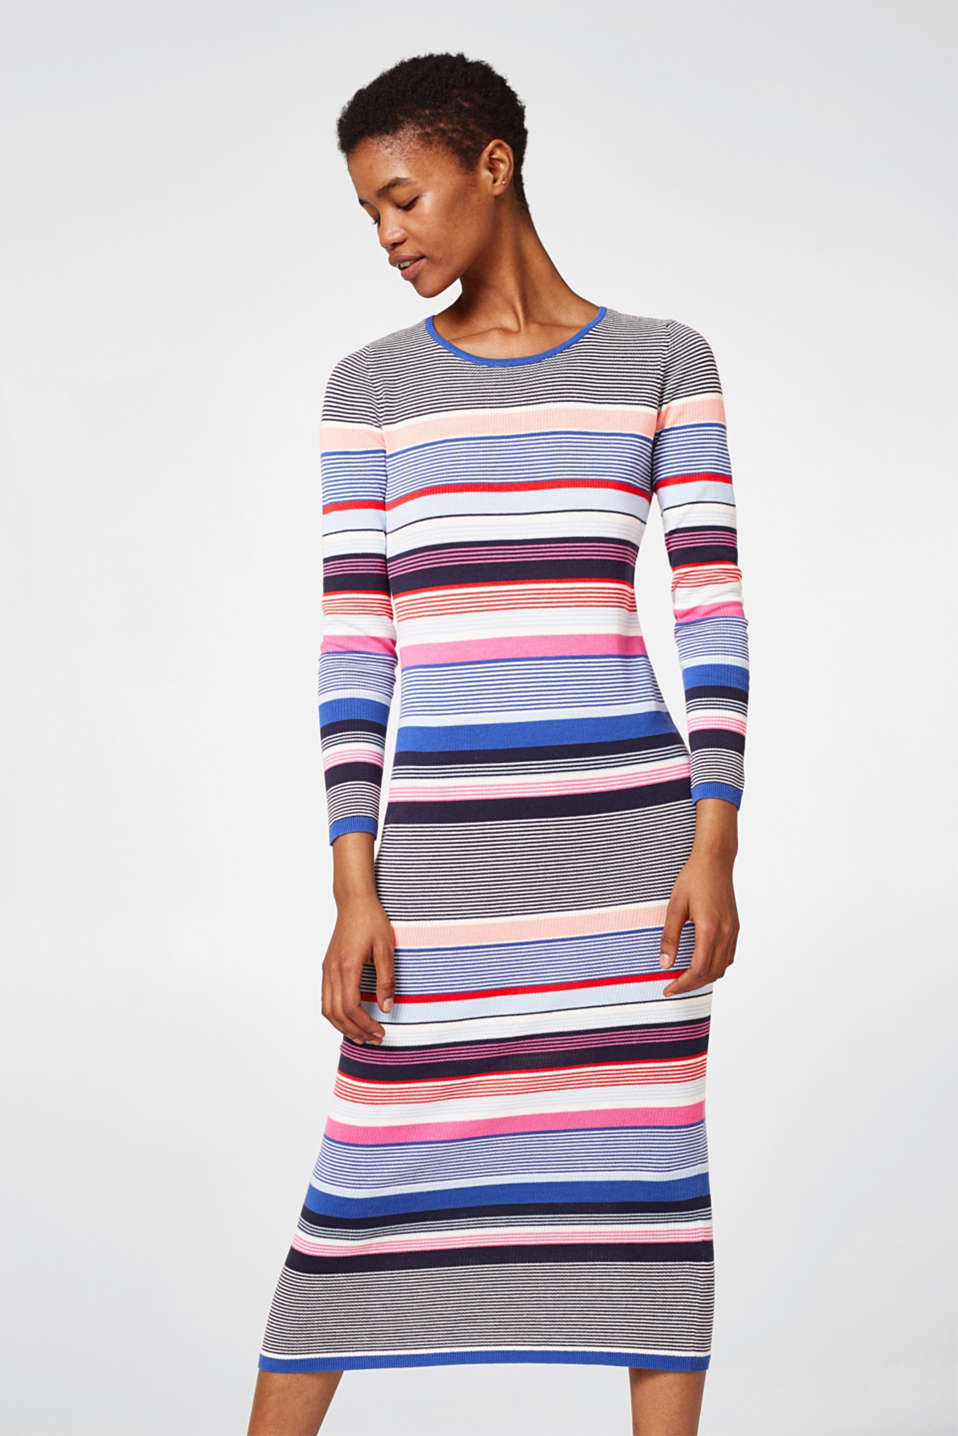 Esprit - Lightweight knitted dress in 100% cotton